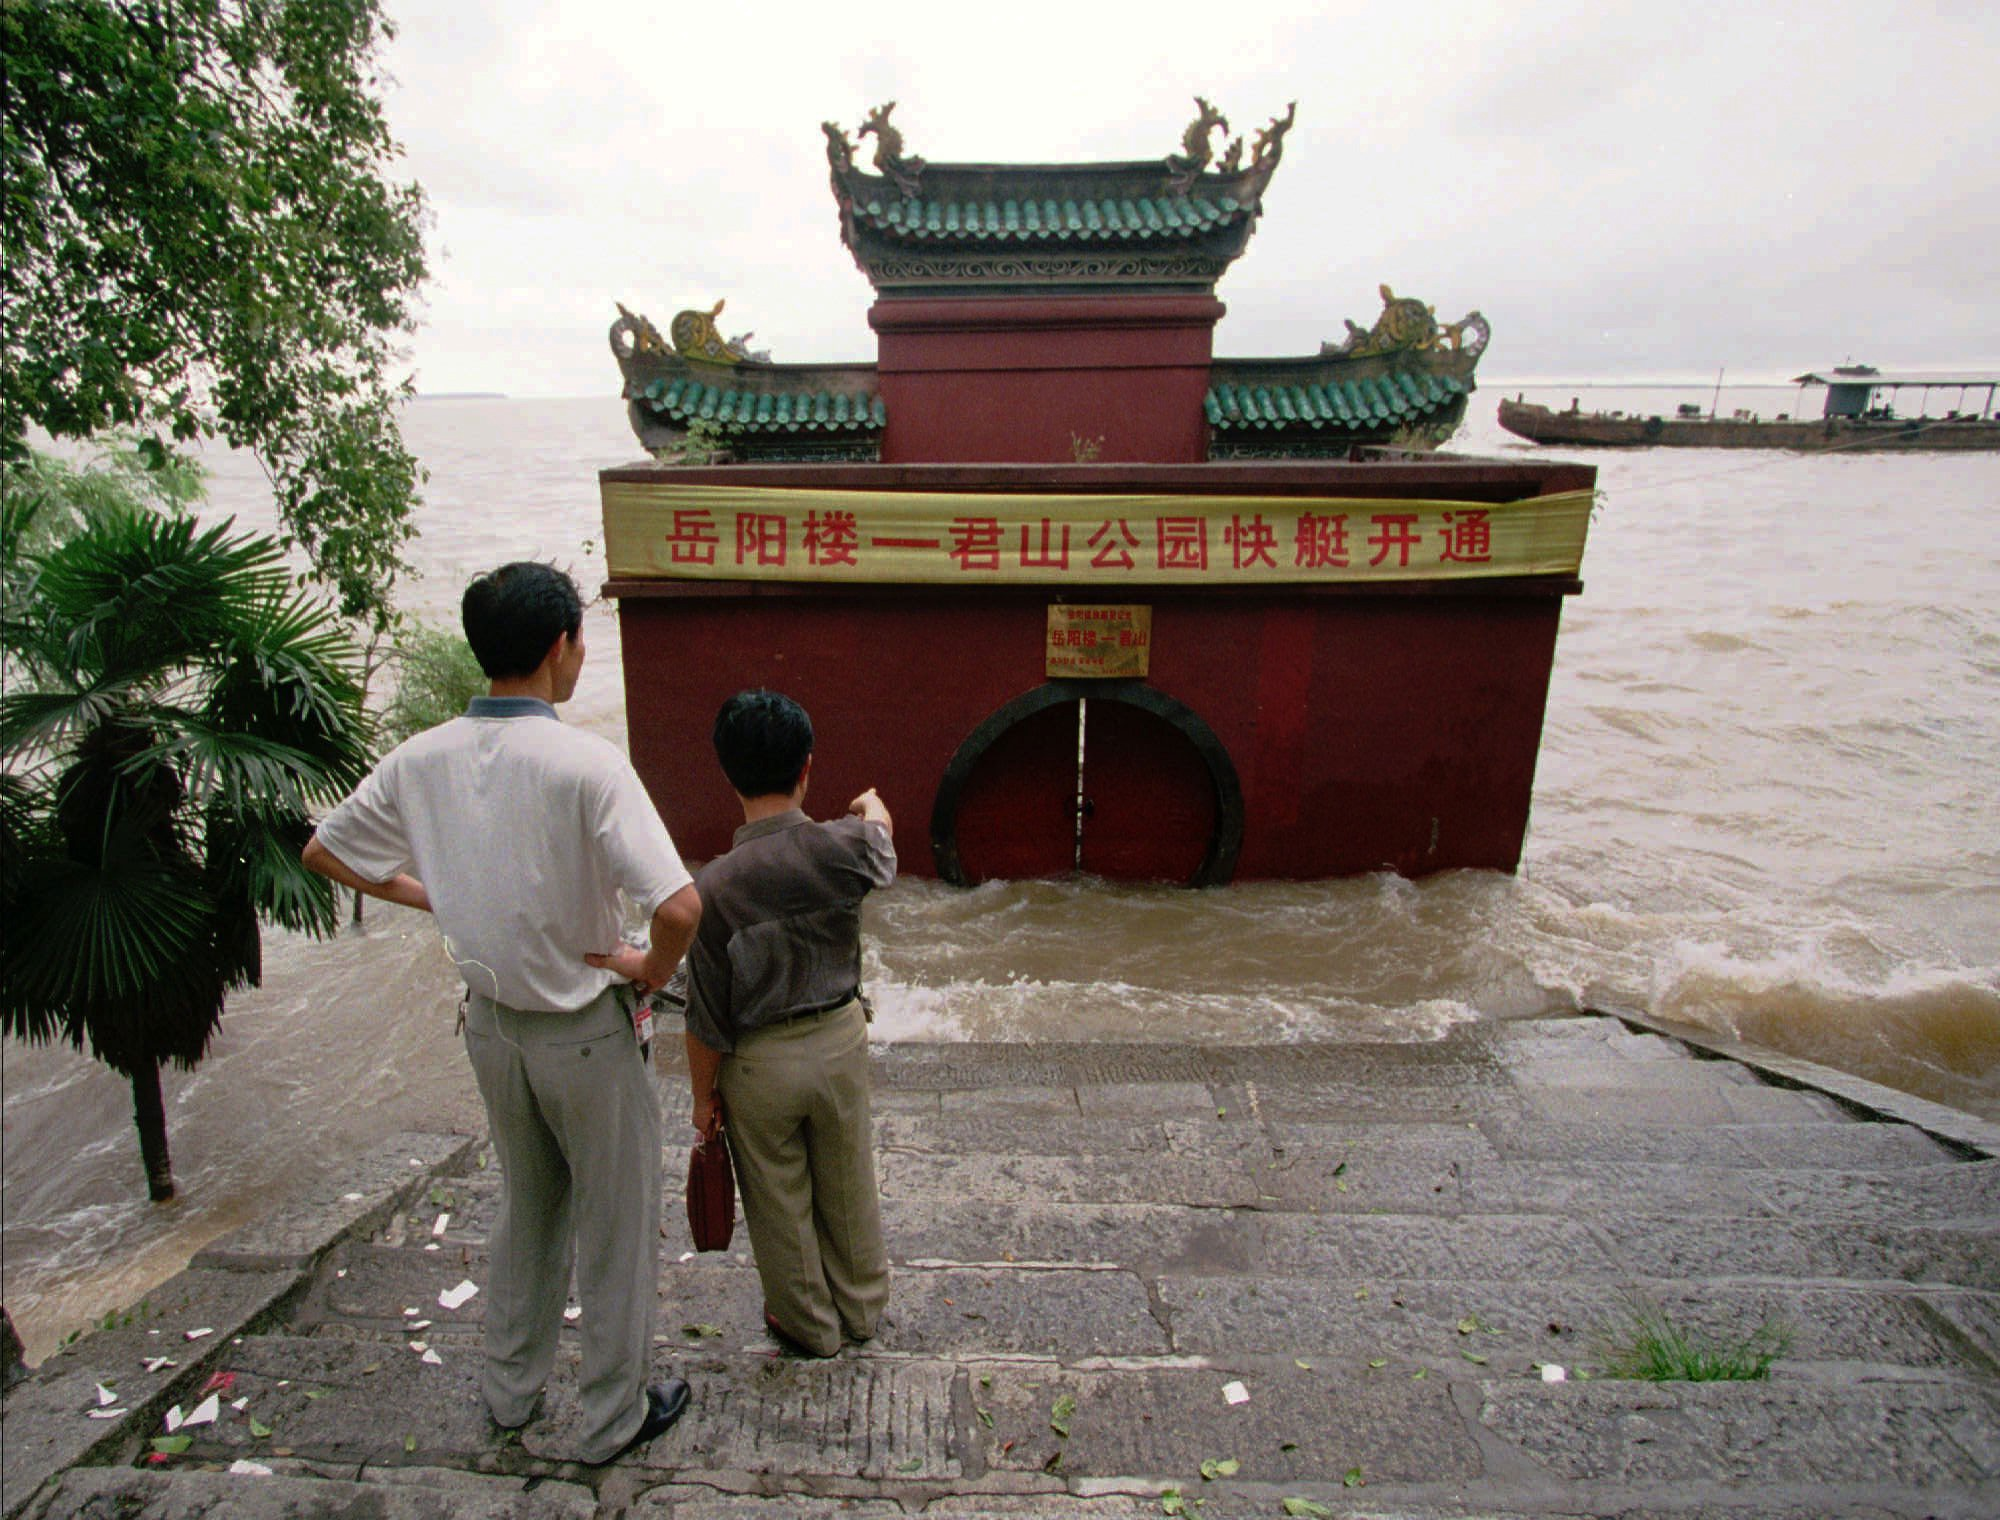 The deadliest structural failure in history killed 170,000—and China